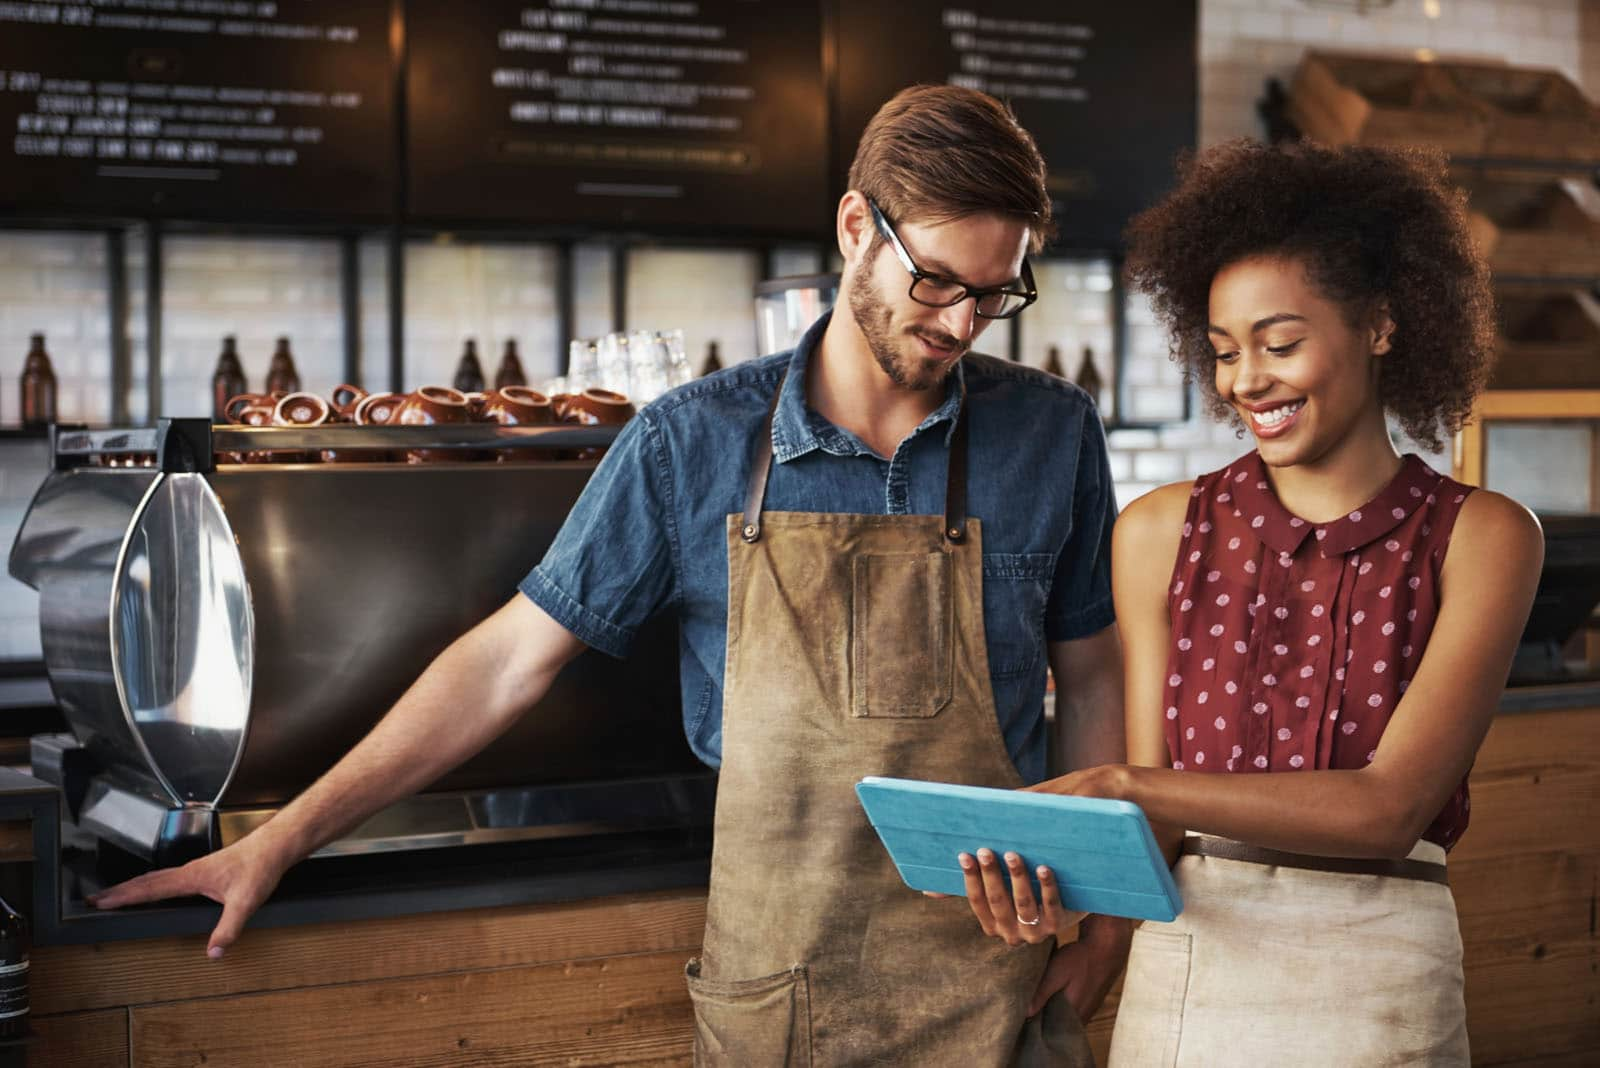 Shot of a smiling woman and man standing inside a coffee shop looking at something on their touchscreen